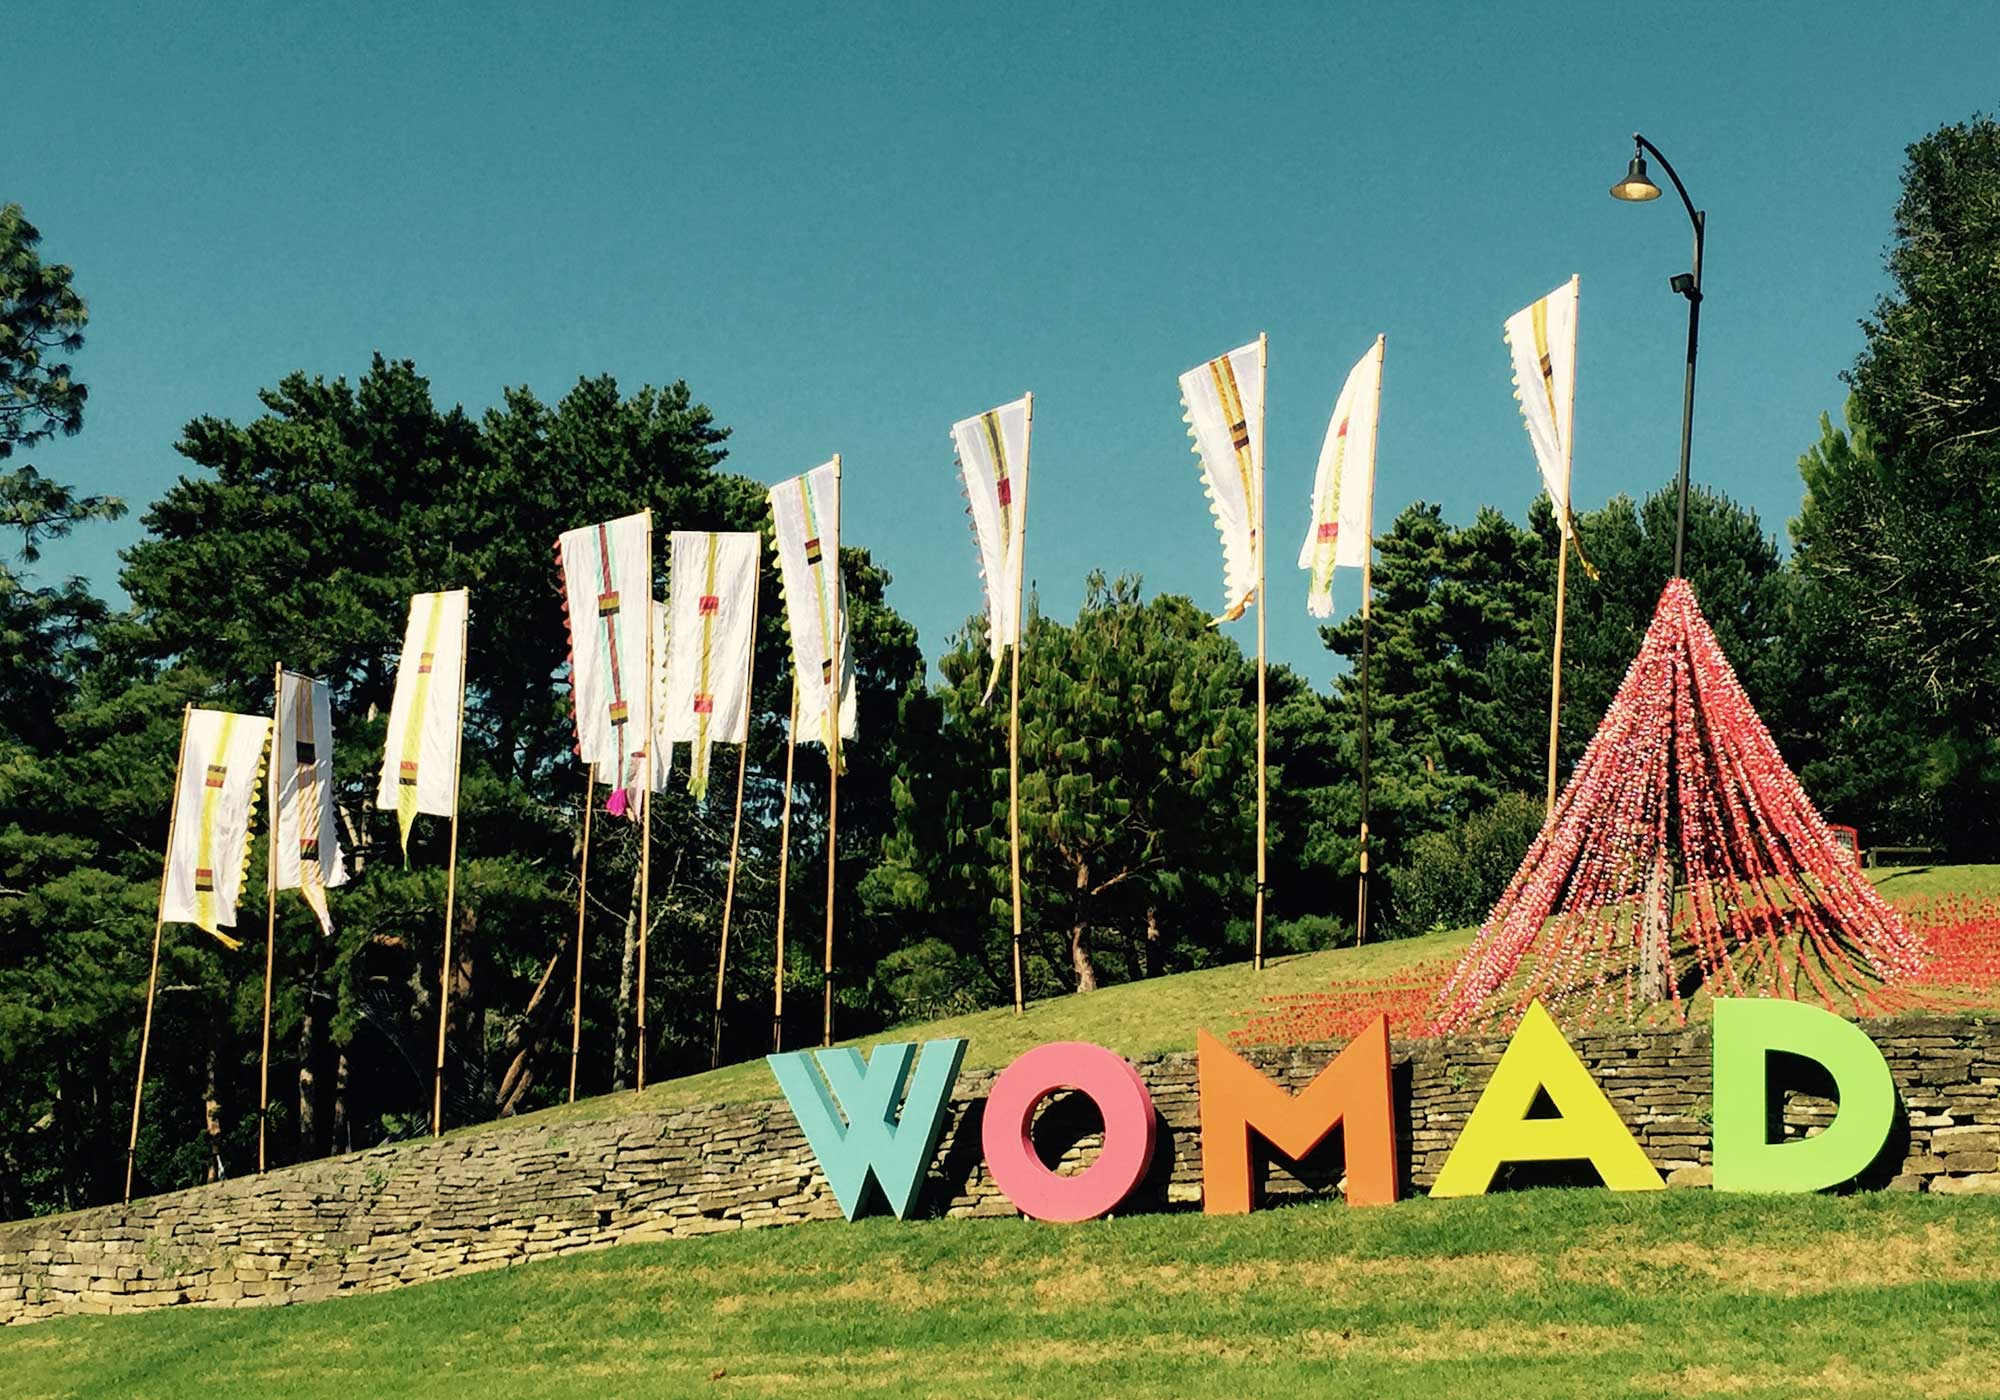 The letters WOMAD set against a small ridge and flags fluttering behind them